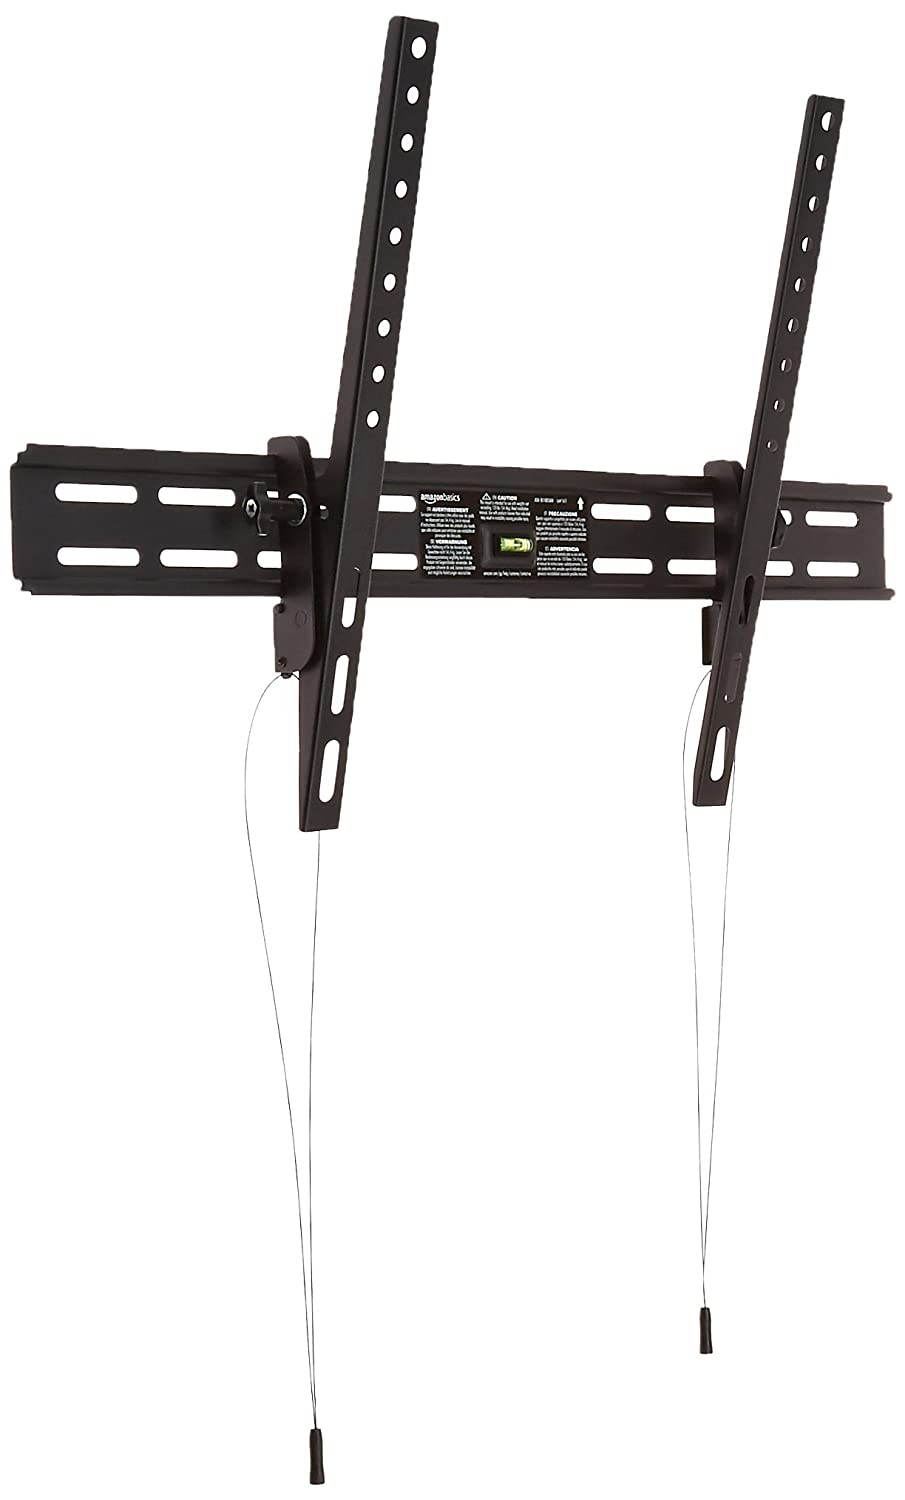 AmazonBasics Heavy-Duty Tilting TV Wall Mount for 37-inch to 80-inch TVs (Certified Refurbished)